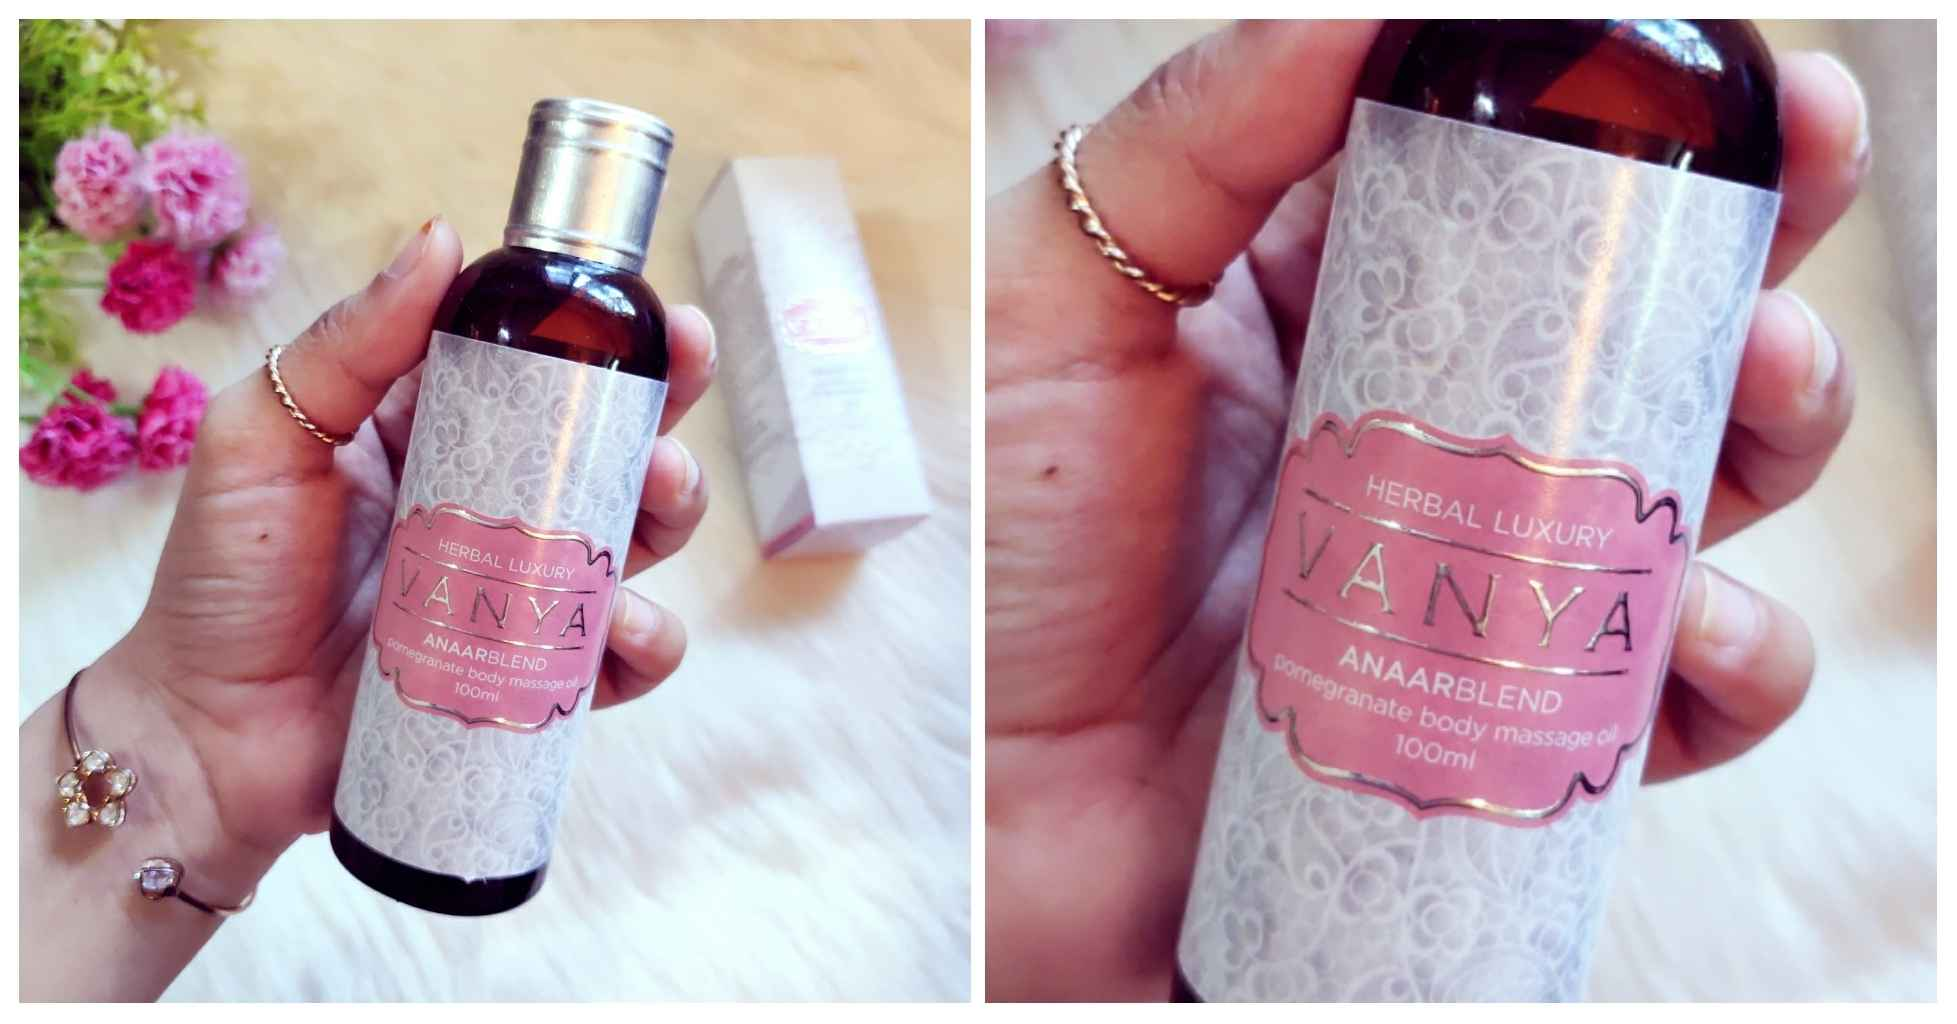 Vanya Anaarblend pomegranate body massage oil review